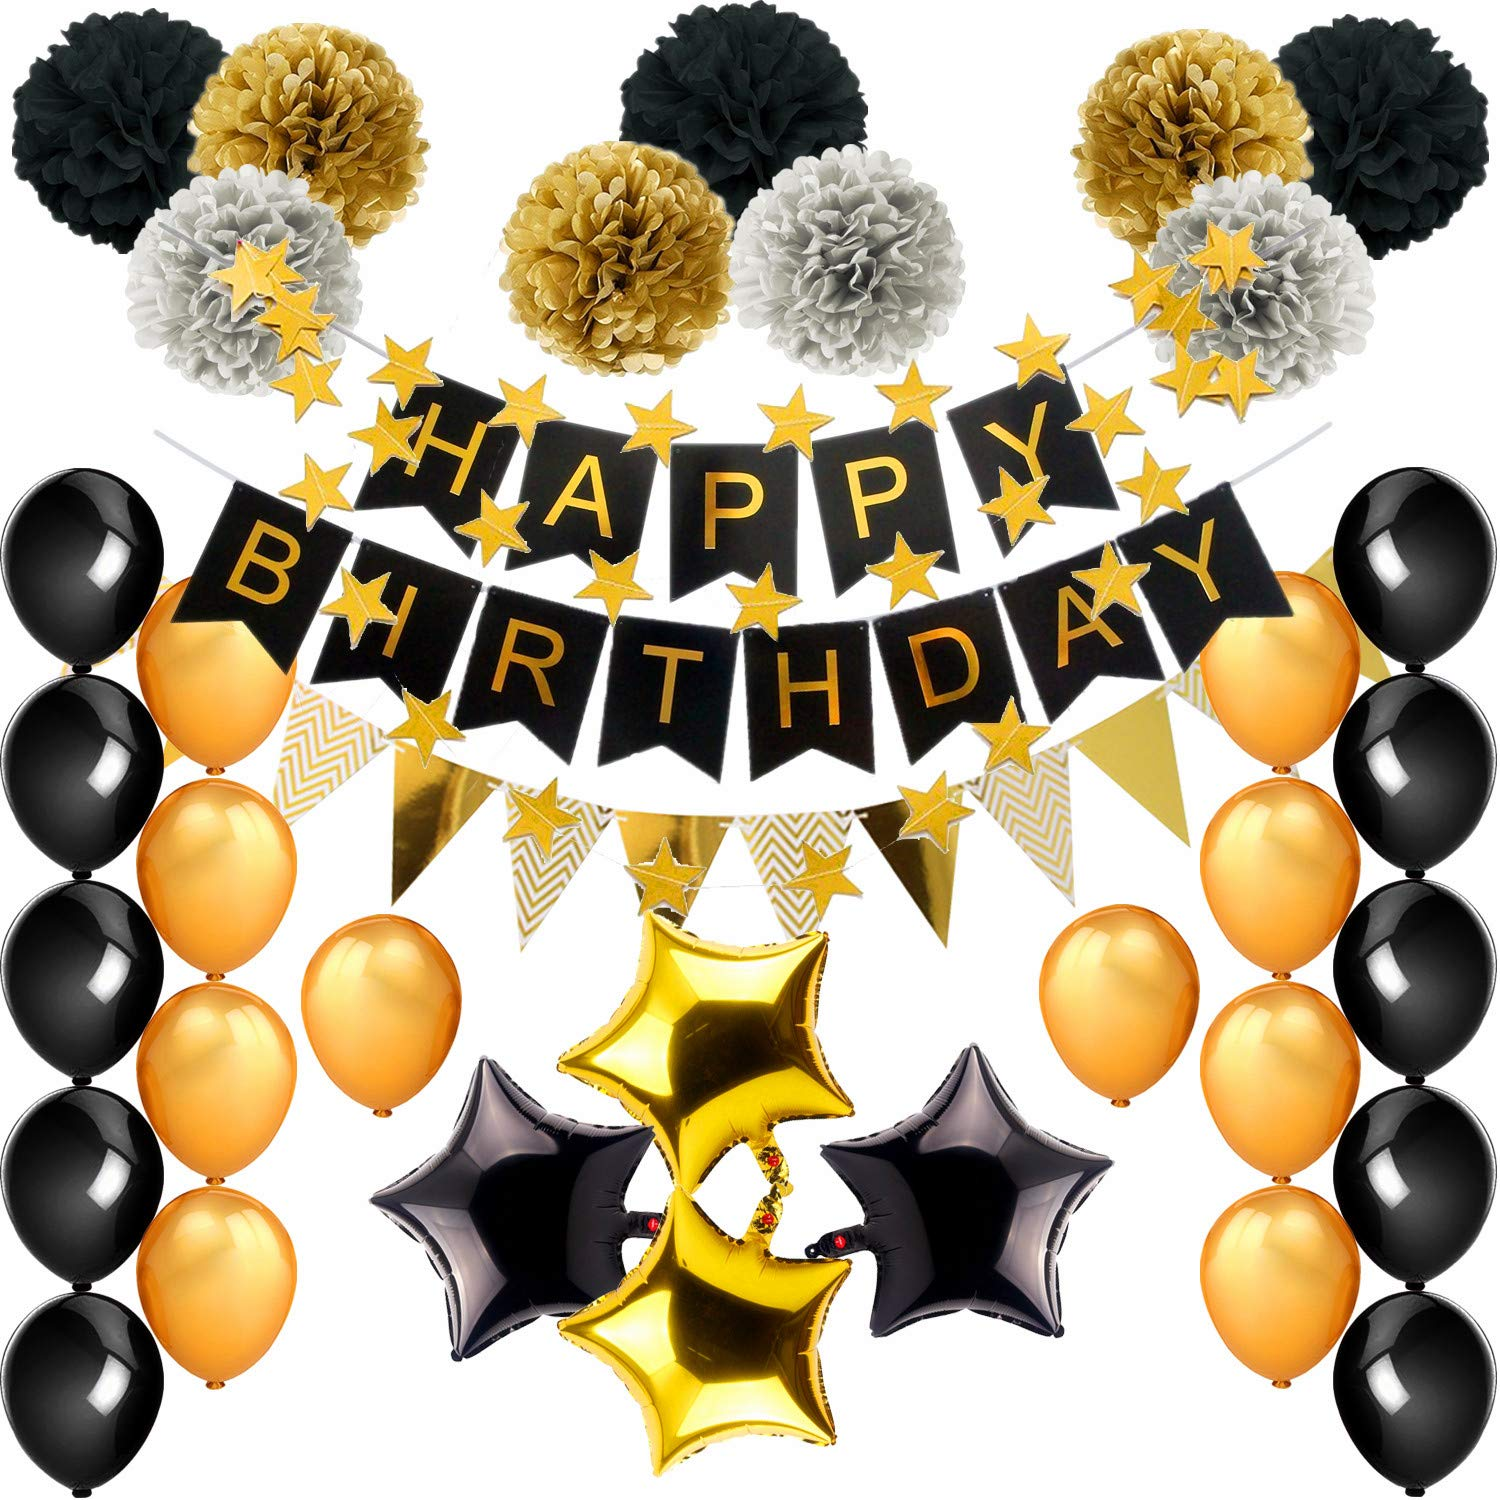 Birthday Decorations, Black and Gold Theme Birthday Party Supplies(99pcs) Happy Birthday Banner Balloons Tissue Paper Pom Poms18th 20th 30th 40th 50th 60th 70th Birthday Decorations 079